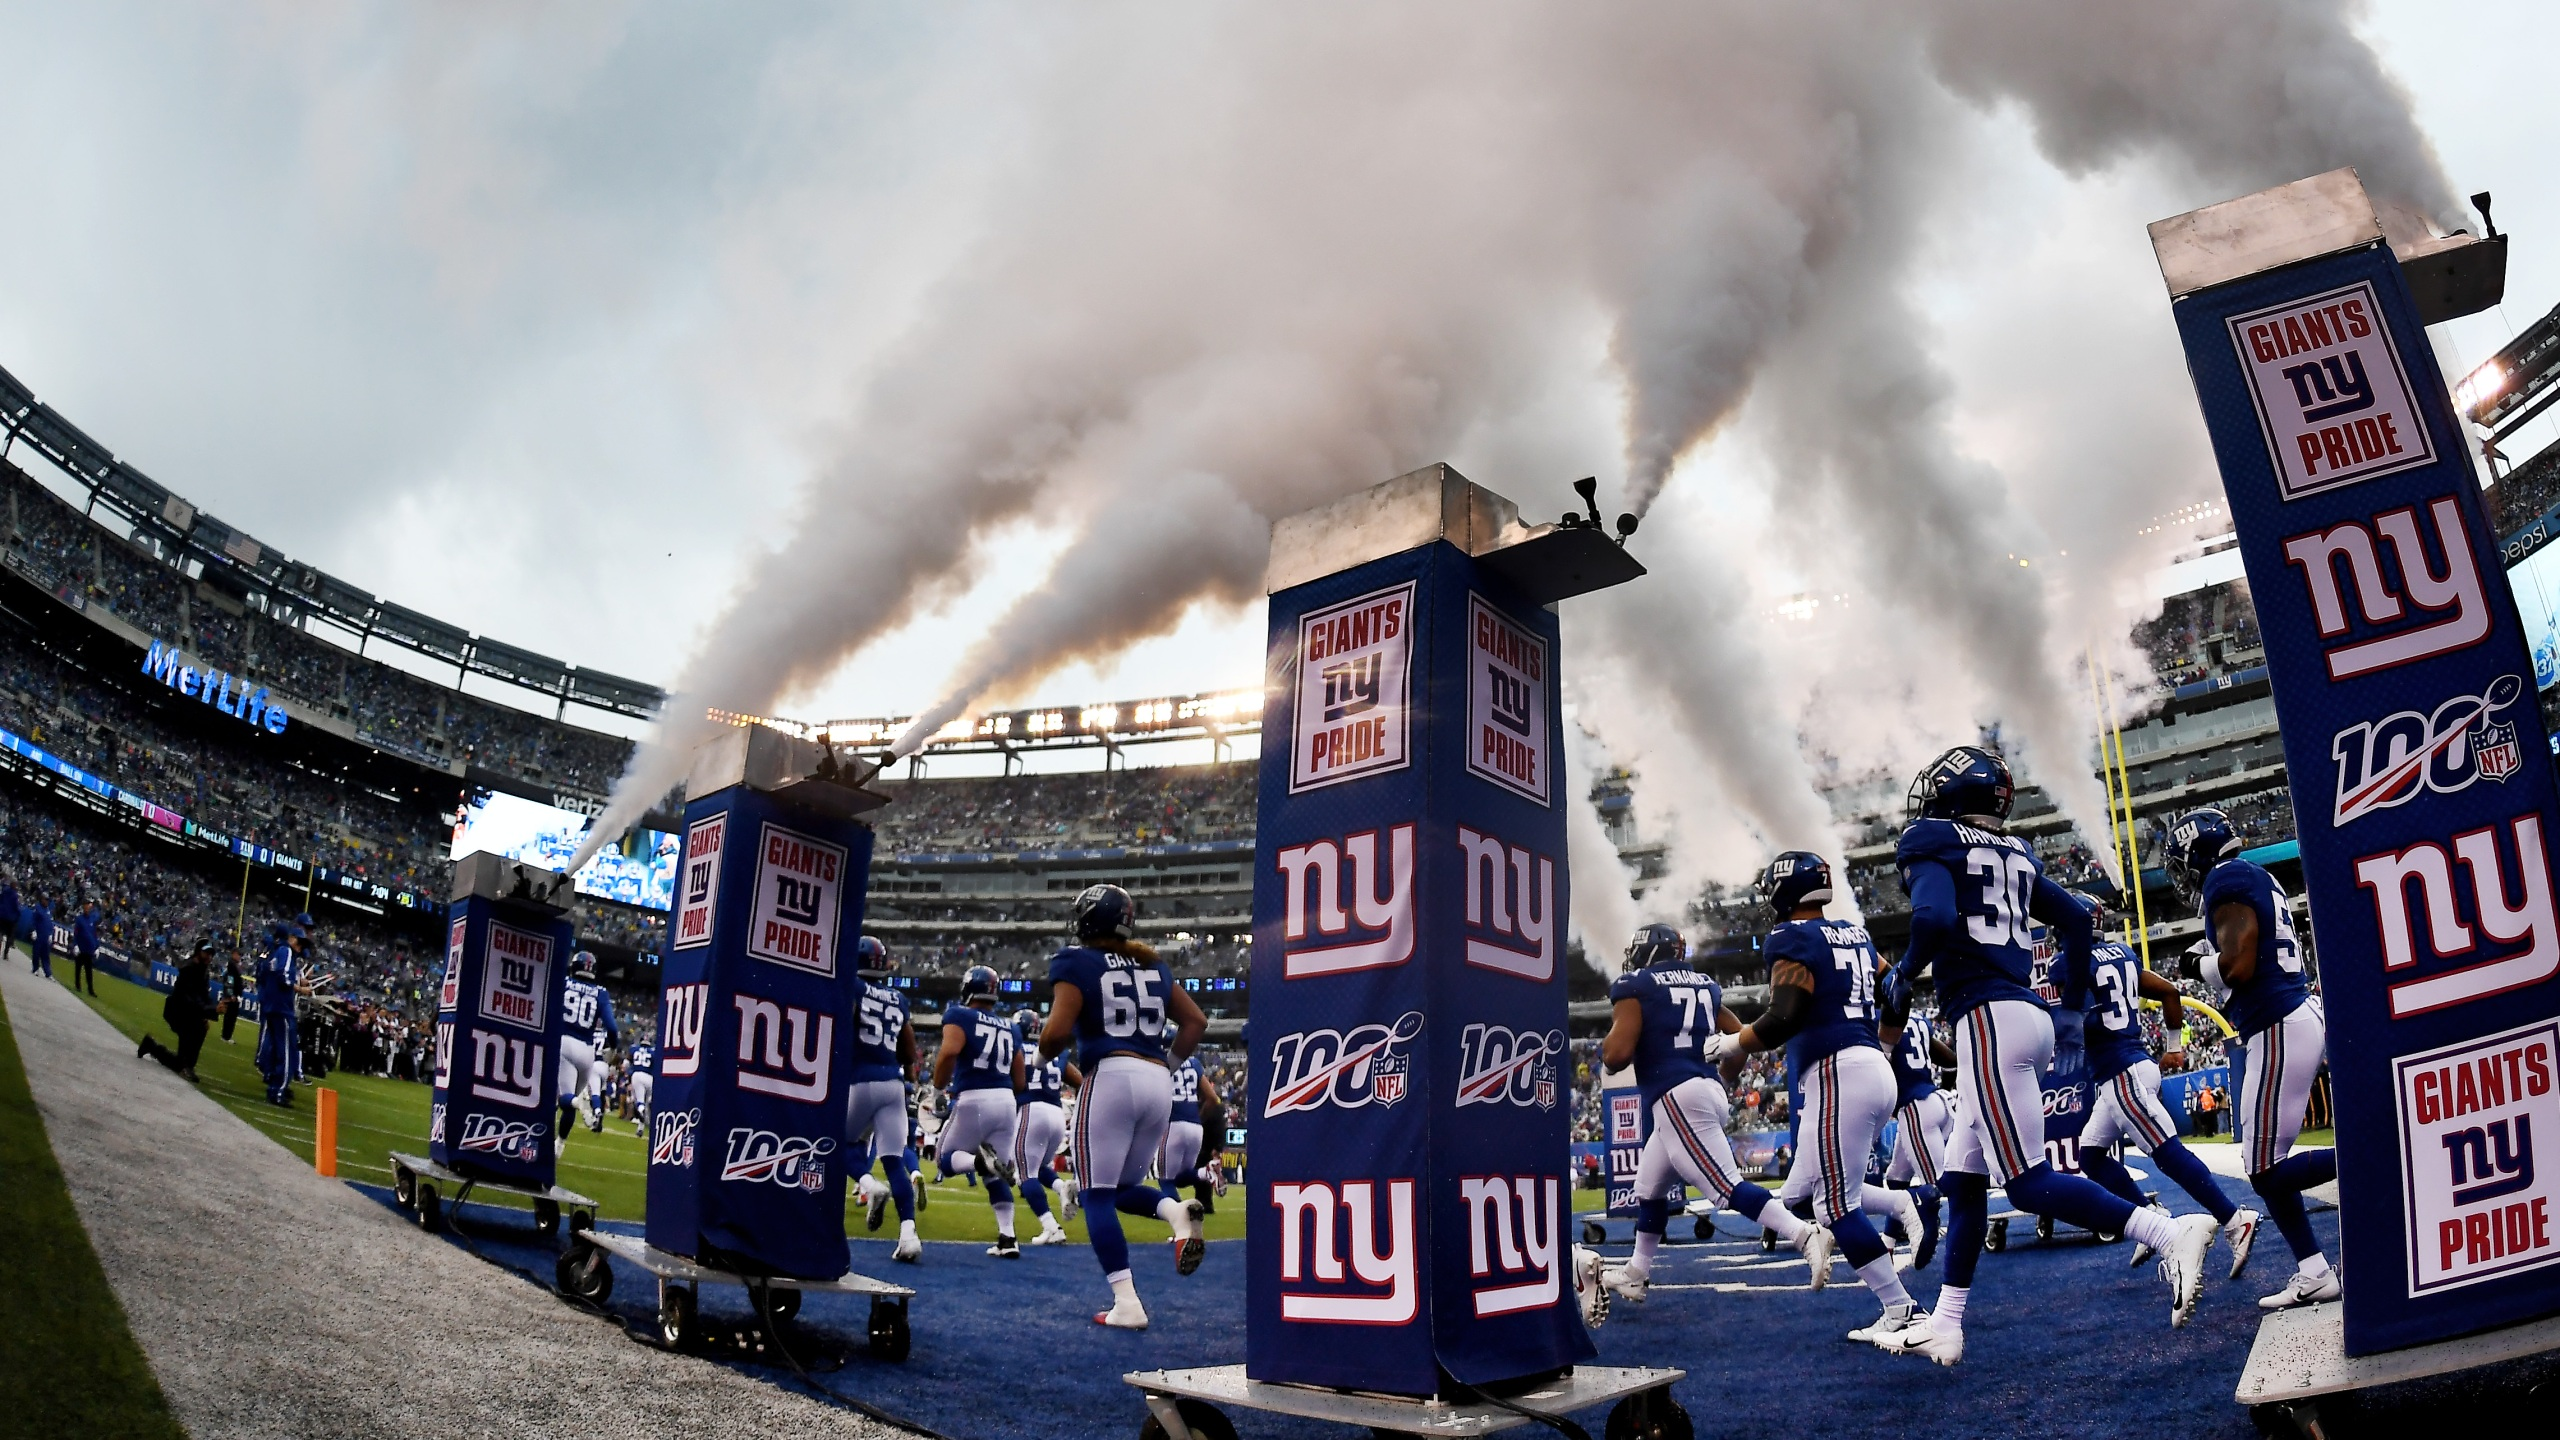 Giants at Metlife Stadium in New Jersey